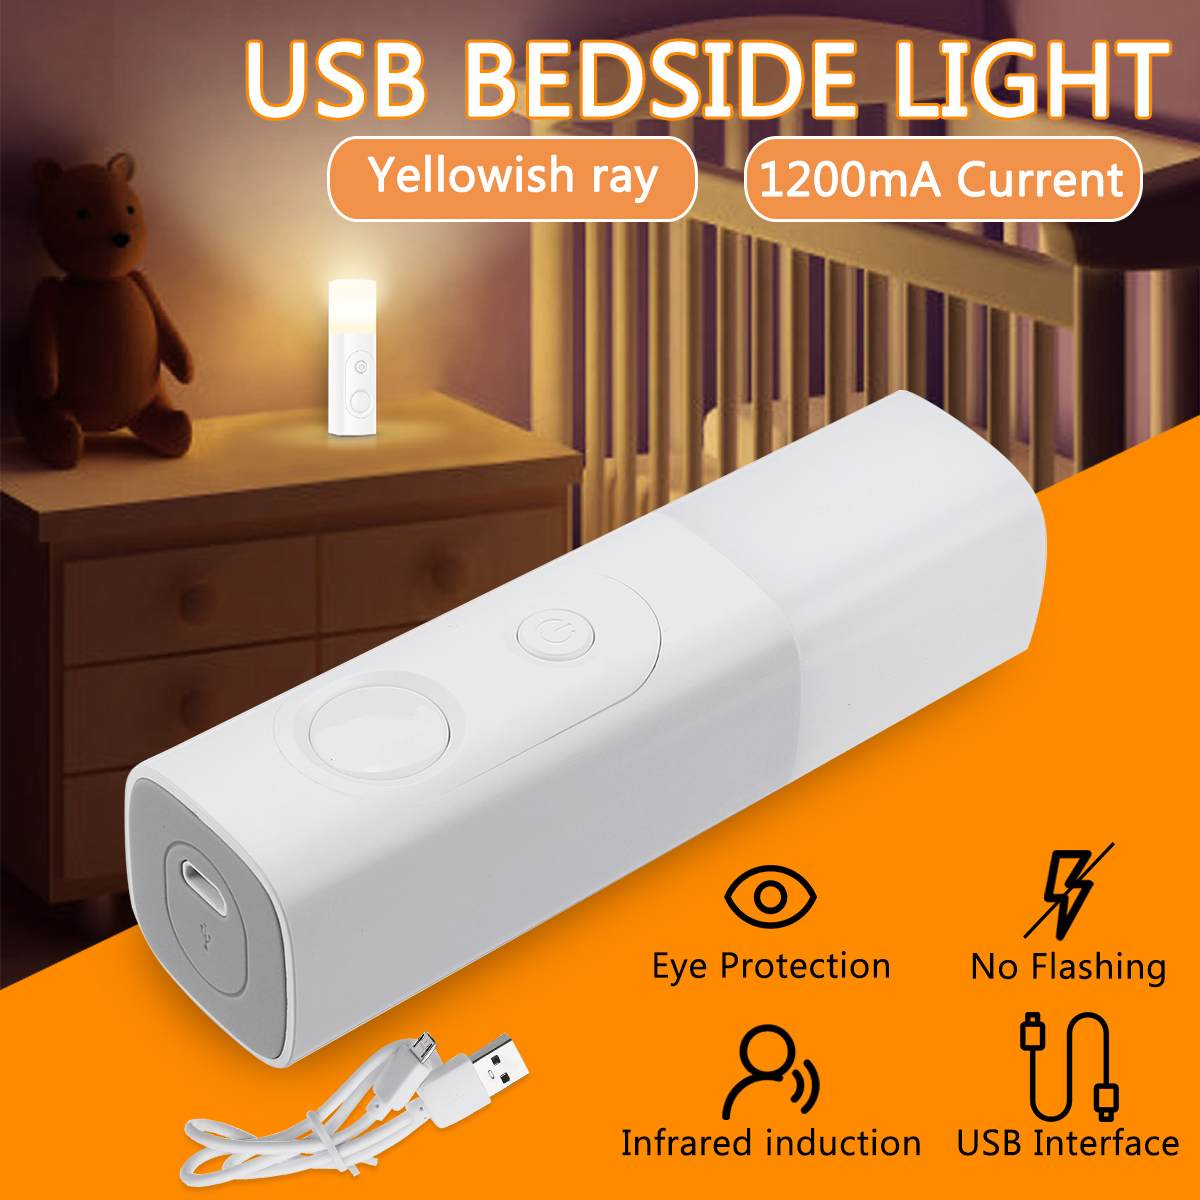 Portable Eye Protection Charging Induction Night Light LED Flexible USB Reading Light Clip-on Bedside Table Desk Lamp 1200mA